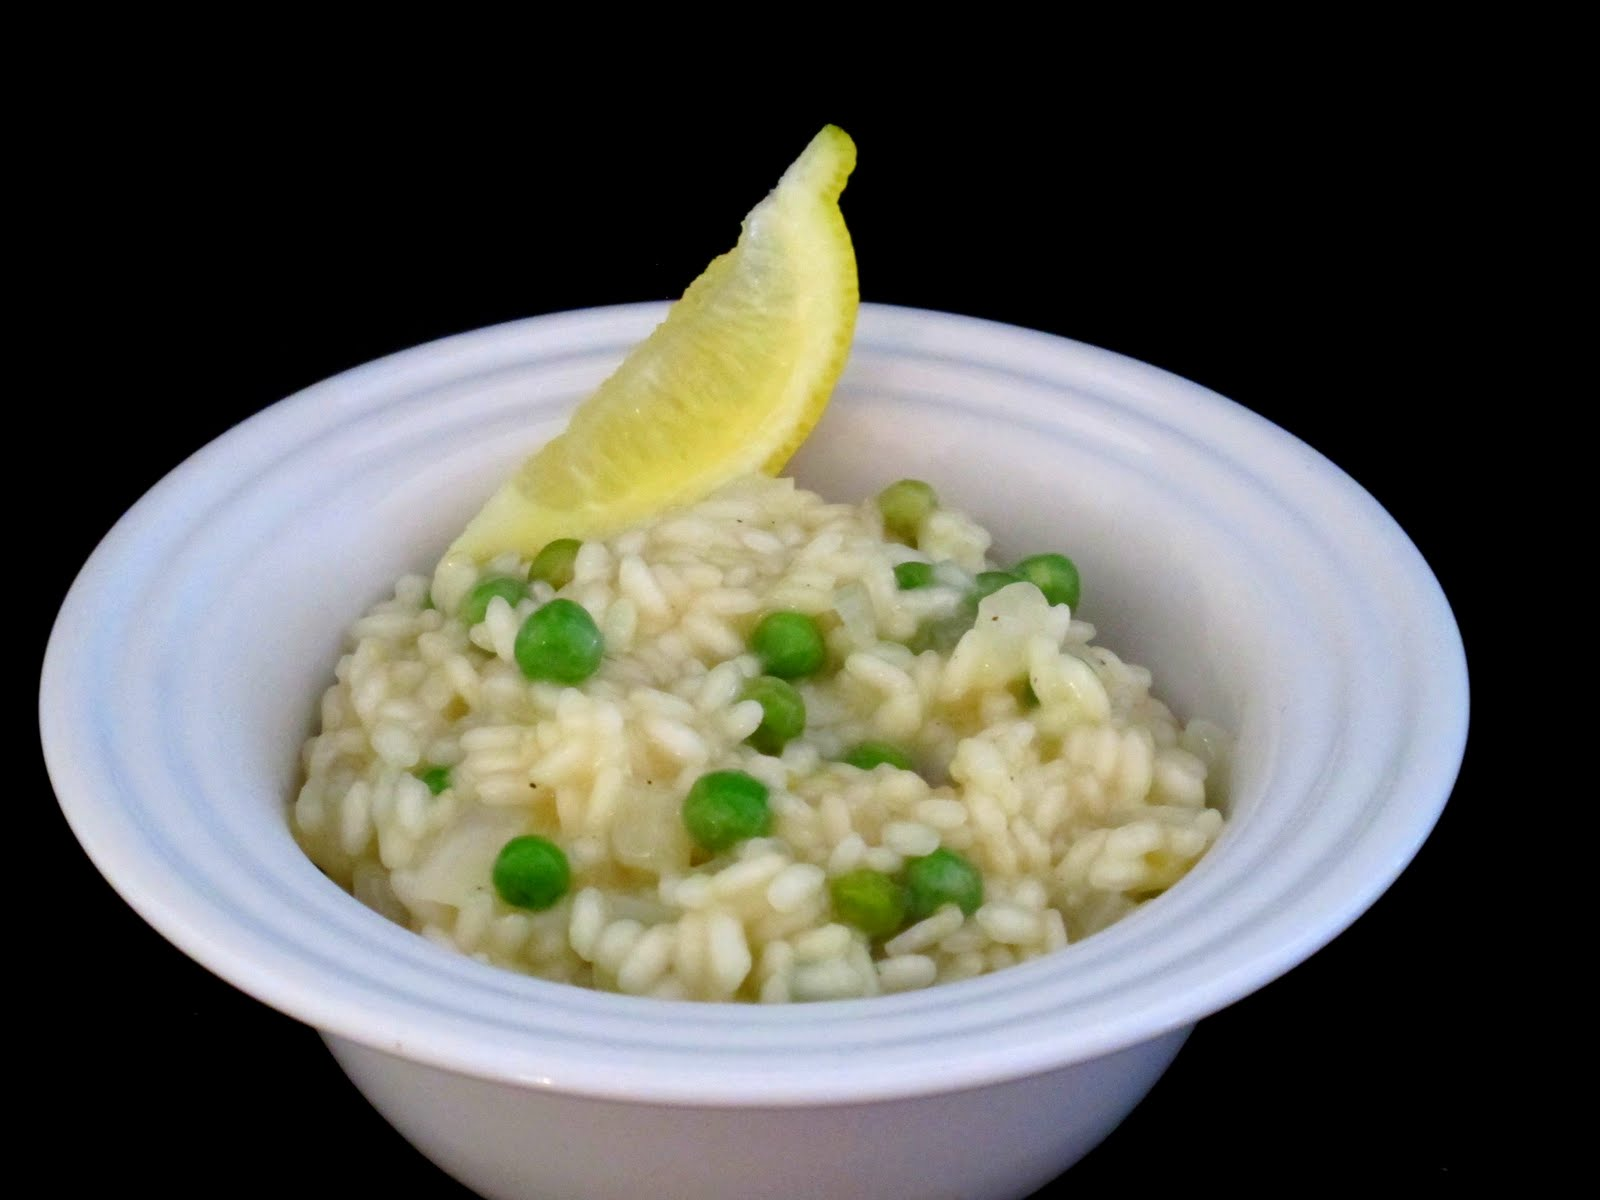 A Toast to Taste: Lemon Risotto with Peas